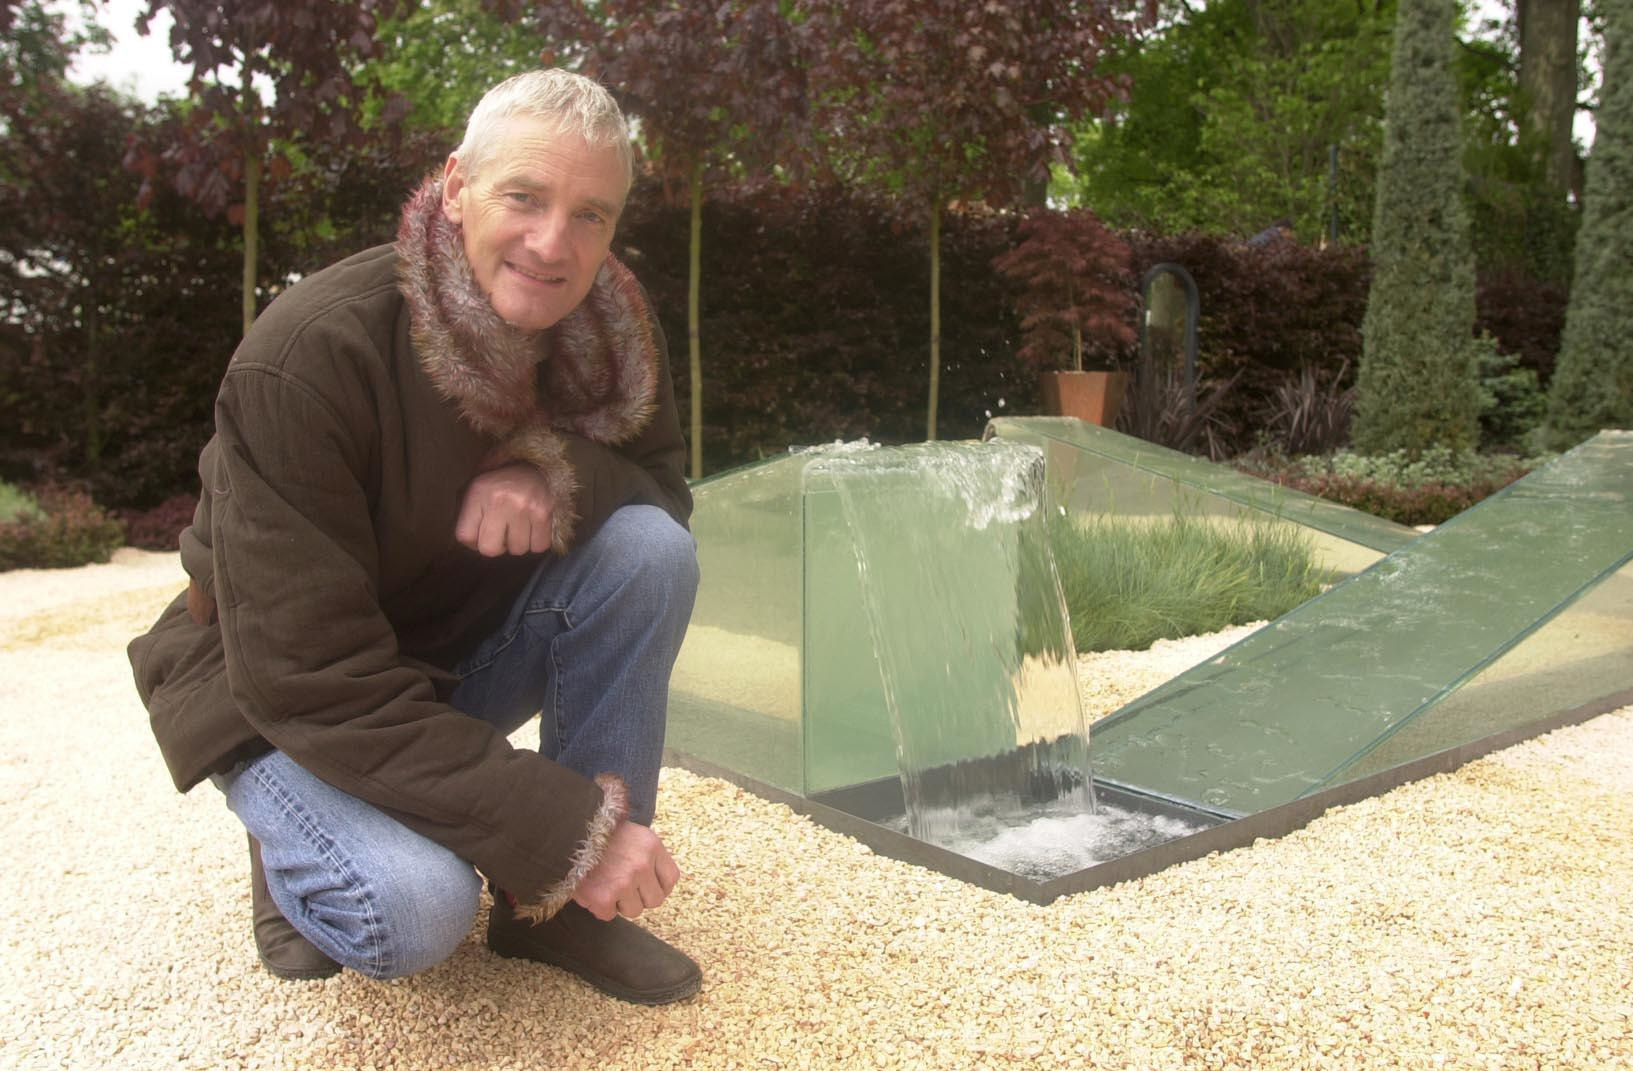 James Dyson crouches besides part of his 'The Wrong Garden' on display at the 2003 Chelsea Flower Show held in central London, that he designed with the help of Jim Honey. The garden's focal point is James's water fountain where water appears to flow upwards.  * The Chelsea Flower Show is held in the grounds of the Royal Hospital, Chelsea, and opens to Royal Horticultural Society (RHS) members on Tuesday and to the general public on Wednesday afternoon.